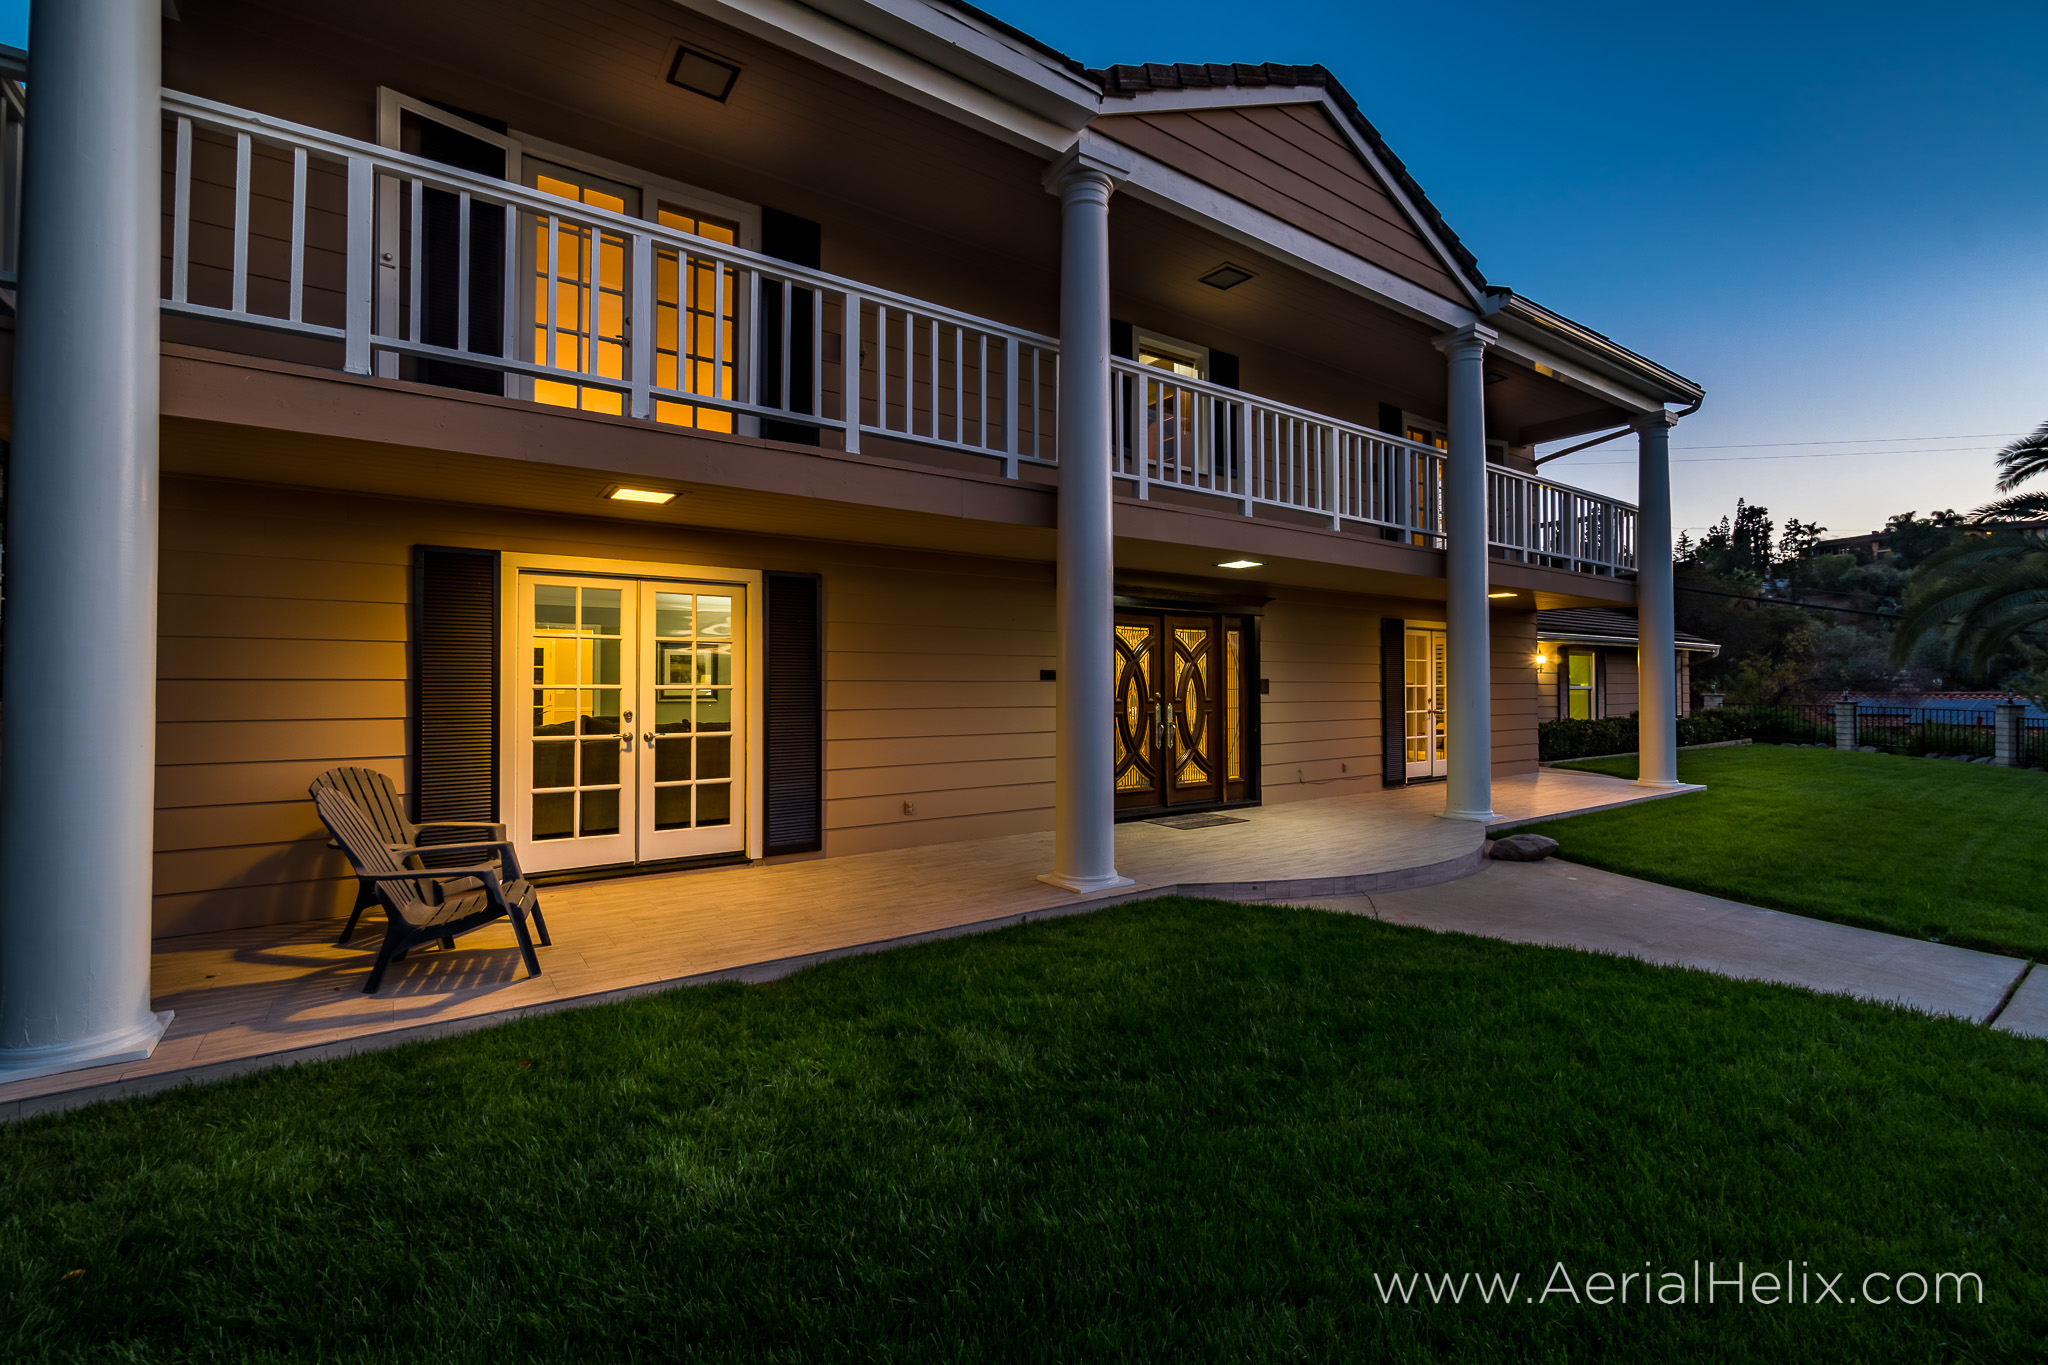 Walnut Ave Twilight - Real estate photographer-7.jpg